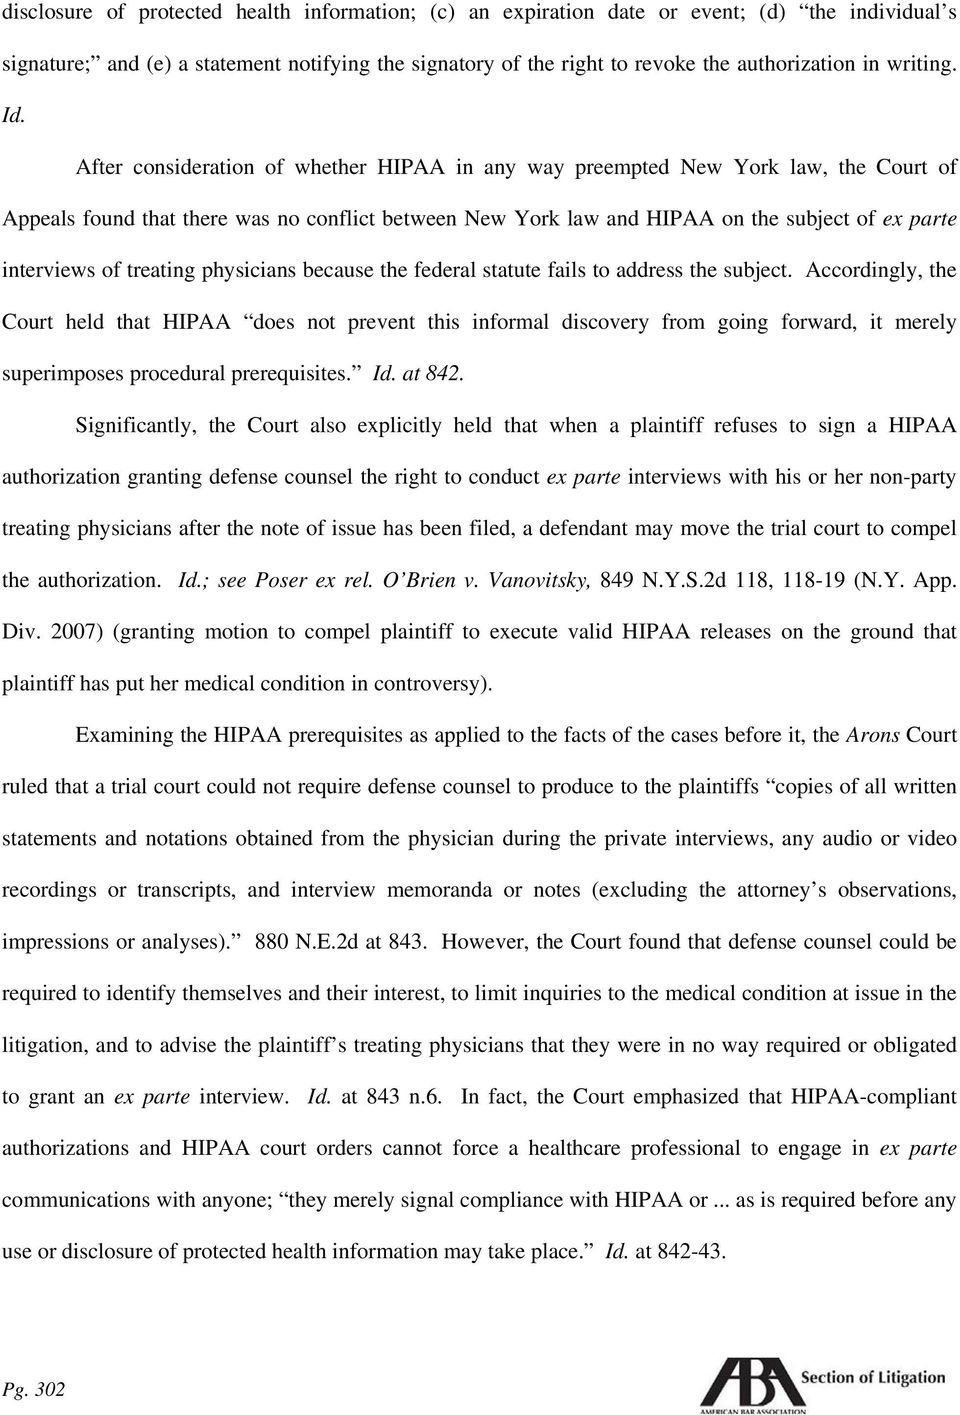 After consideration of whether HIPAA in any way preempted New York law, the Court of Appeals found that there was no conflict between New York law and HIPAA on the subject of ex parte interviews of